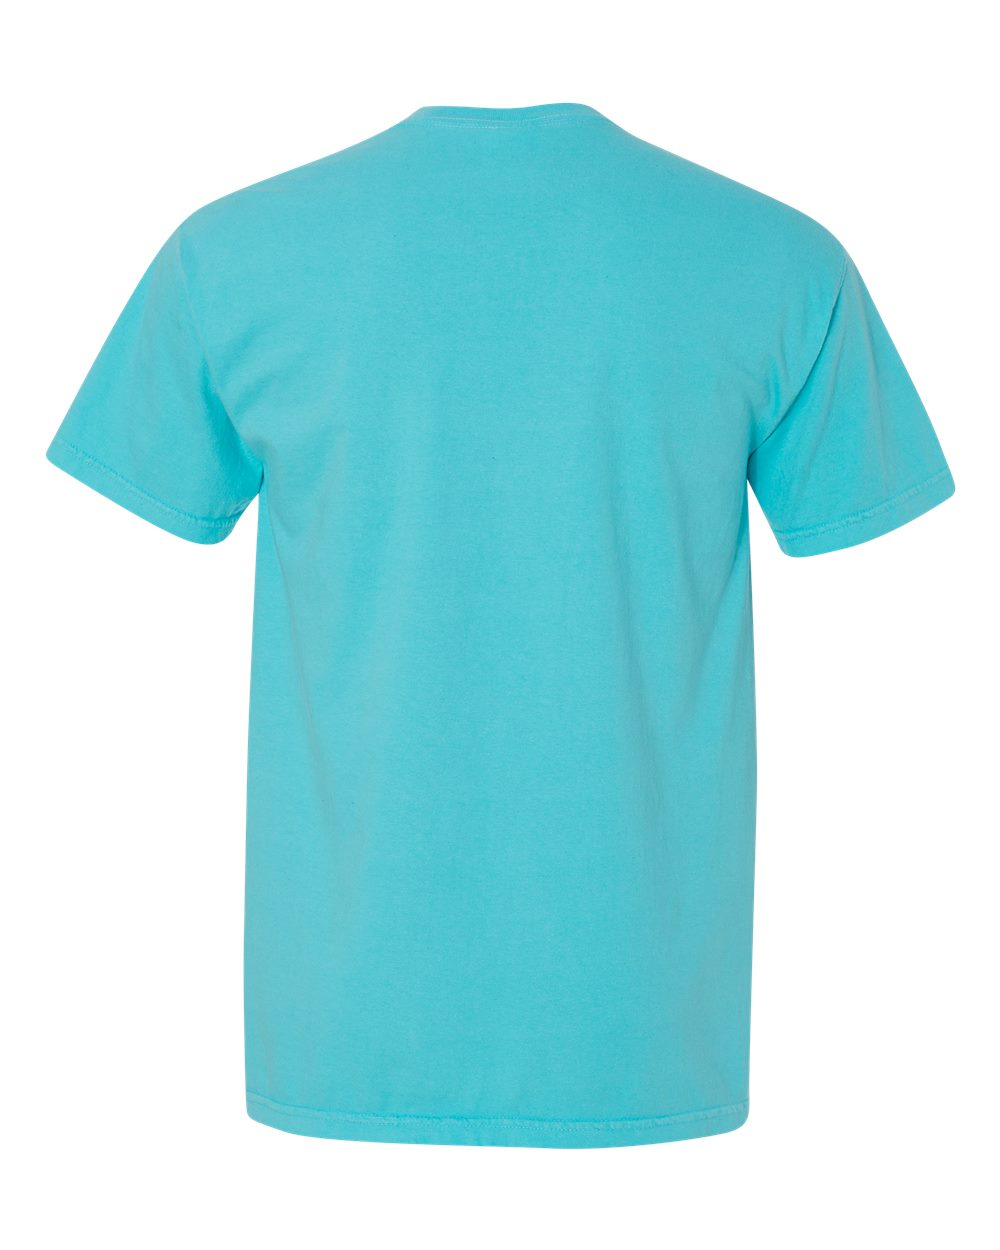 Comfort-Colors-Men-039-s-6-1-oz-Garment-Dyed-Pocket-T-Shirt-6030CC-S-3XL thumbnail 55